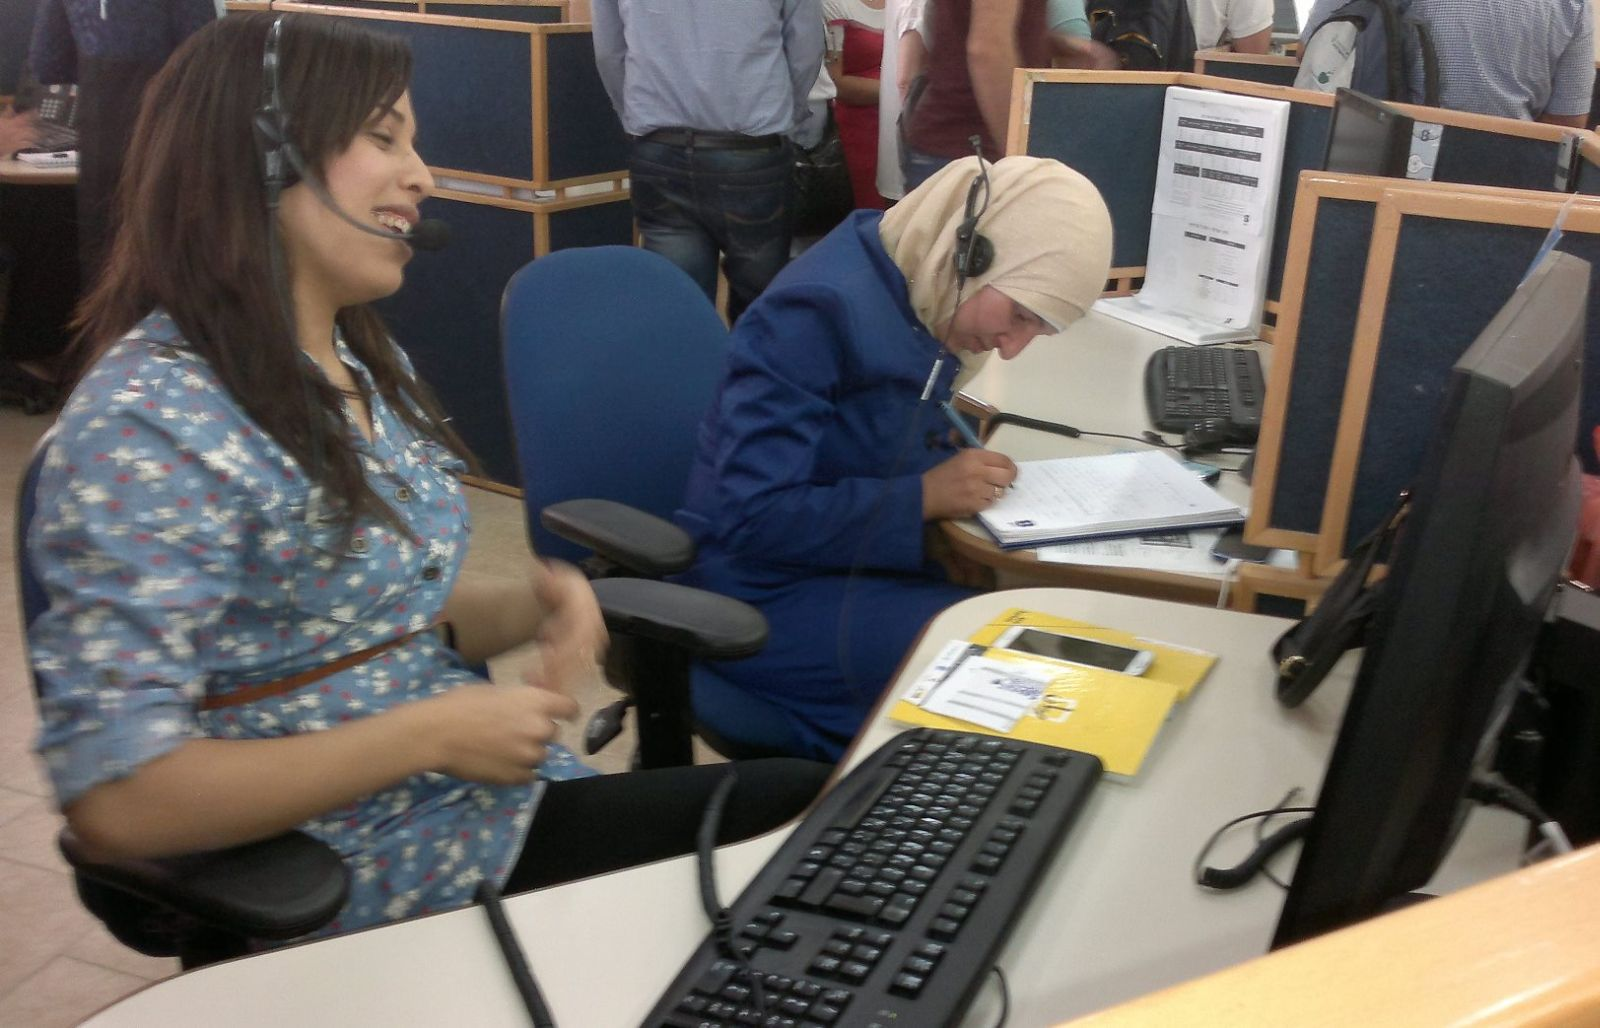 bringing bedouin women into the workforce c bedouin women working in the call center inside a mosque photo by abigail klein leichman